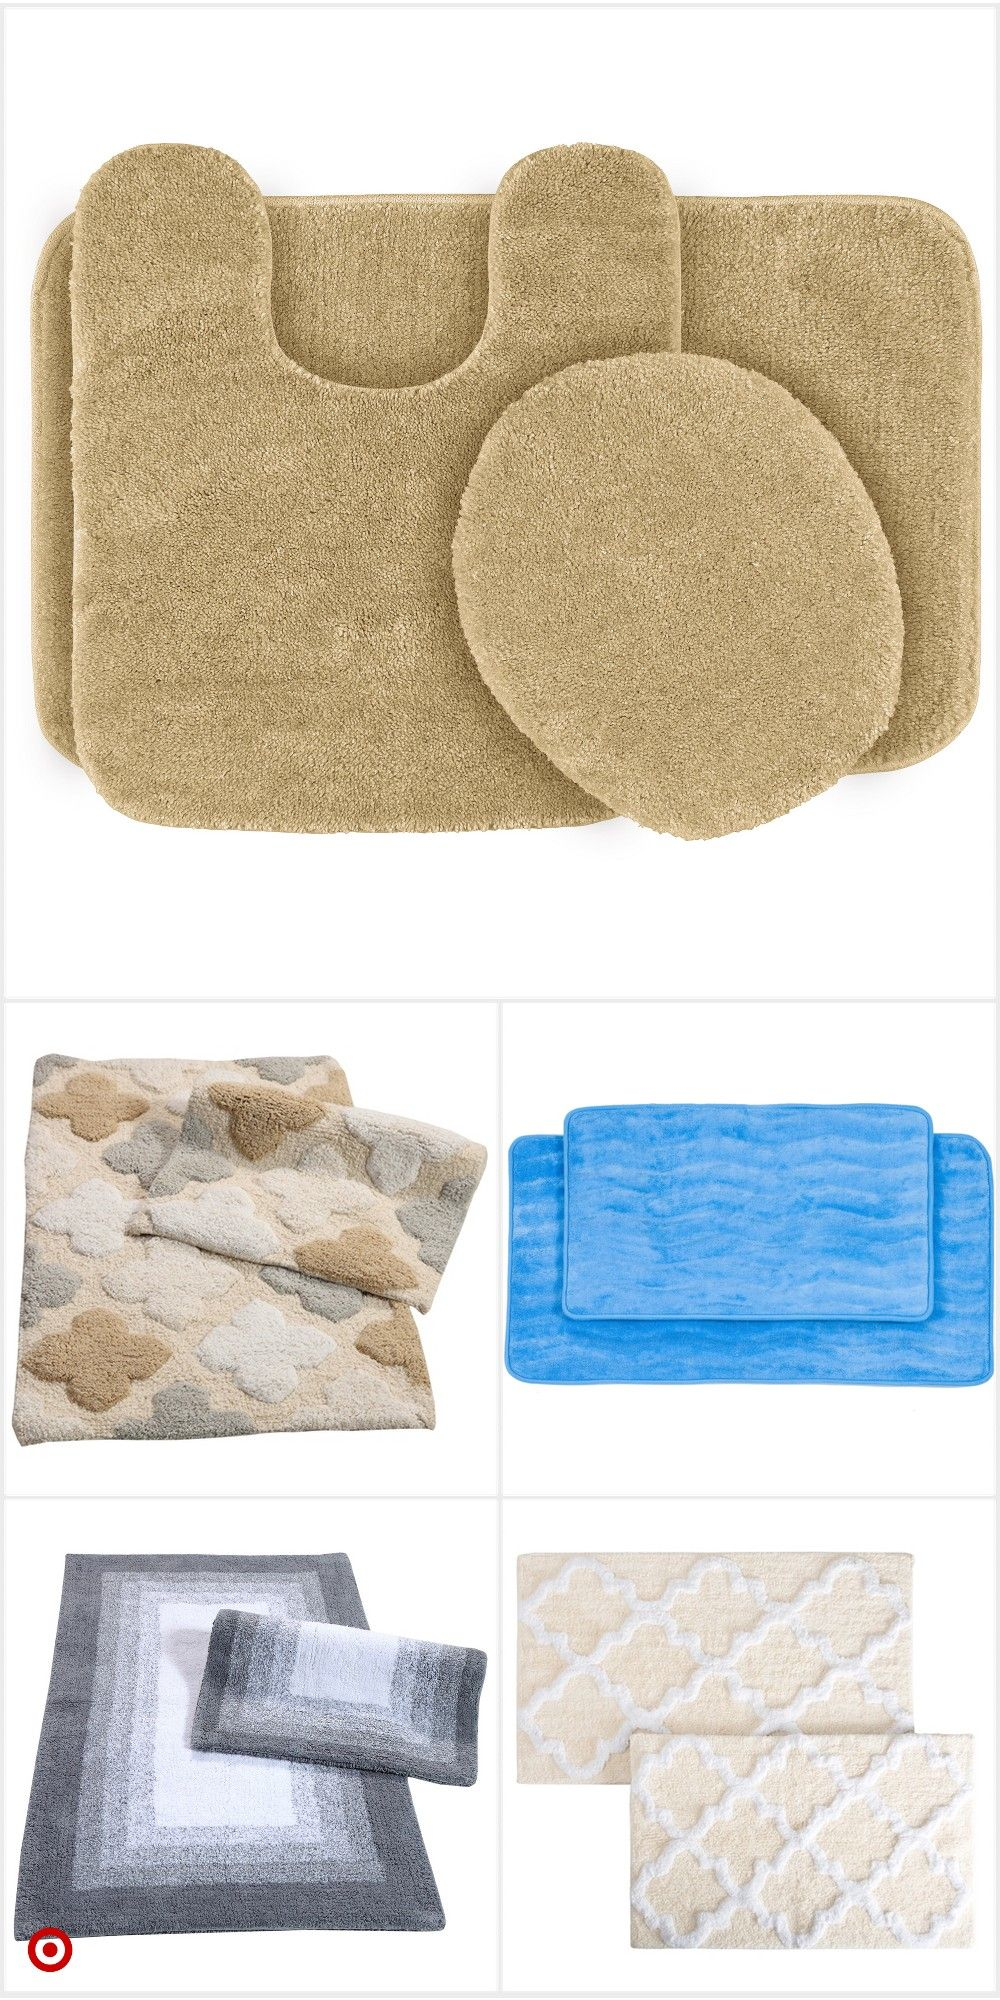 Shop Target for bath mat set you will love at great low prices